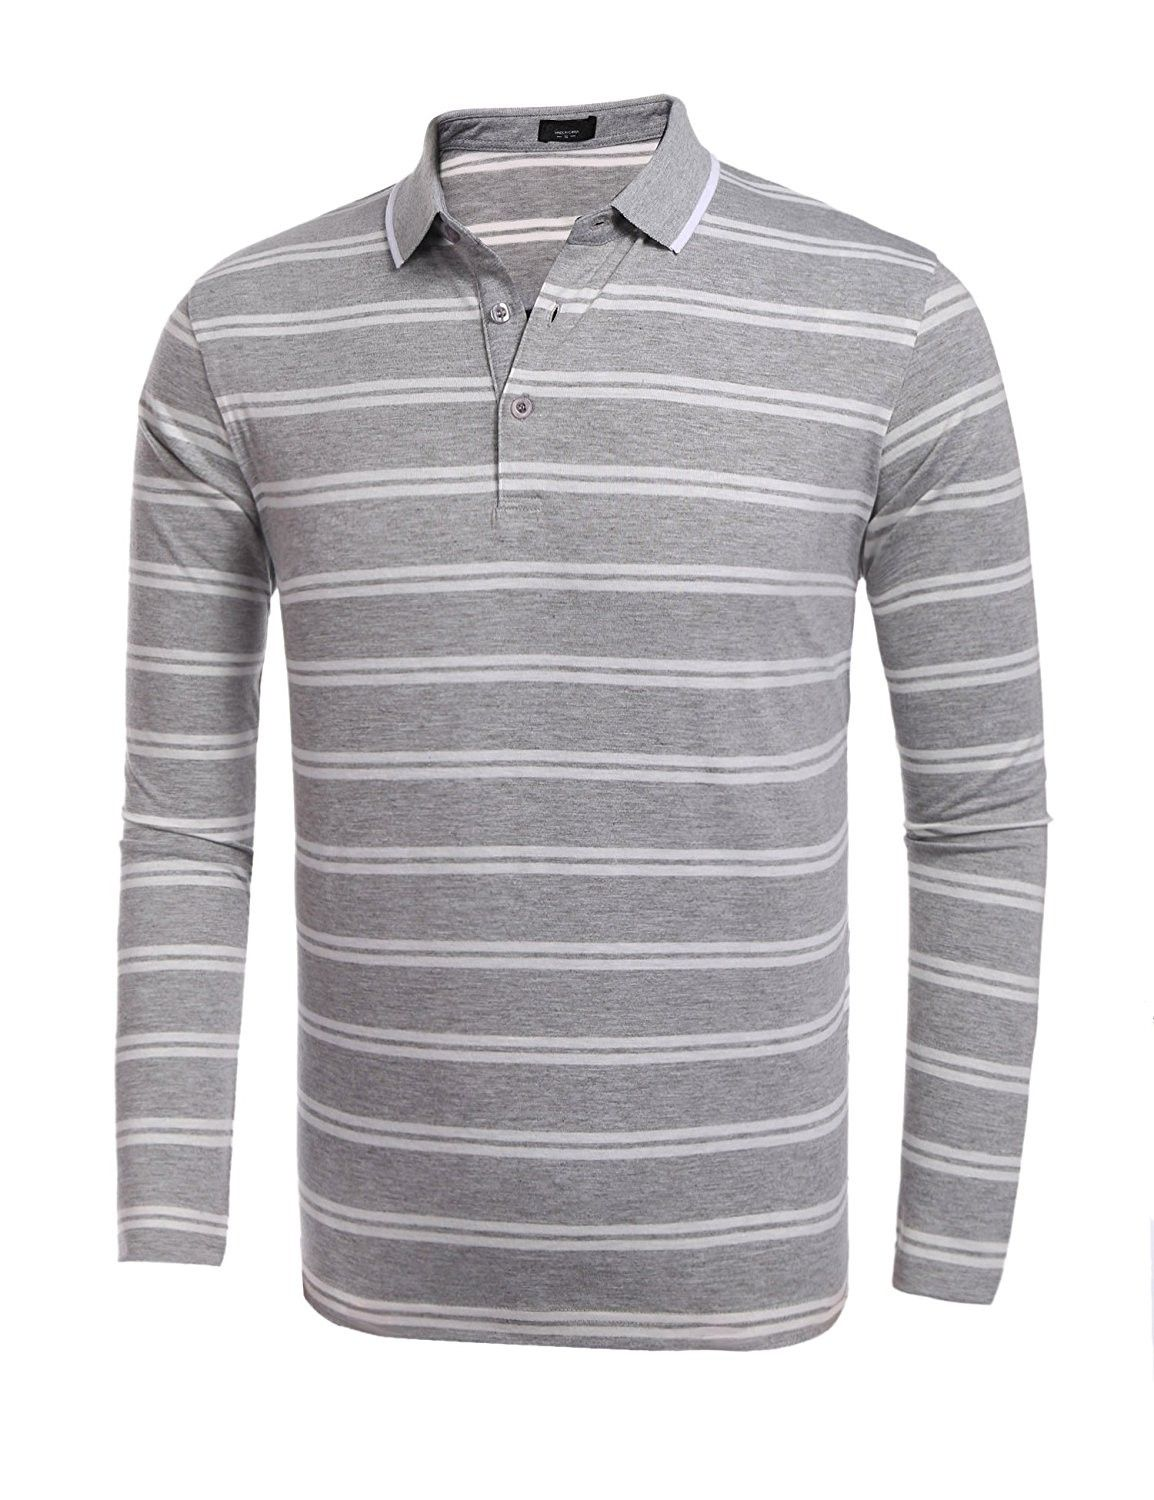 629b41b5f36b Men's Clothing, Shirts, Polos,Men's Casual Long Sleeve Striped Golf Polo  Shirt Fashion T-Shirt - Grey - CV1870KAY9O #Fashion #Shirts #men #shopping # style # ...